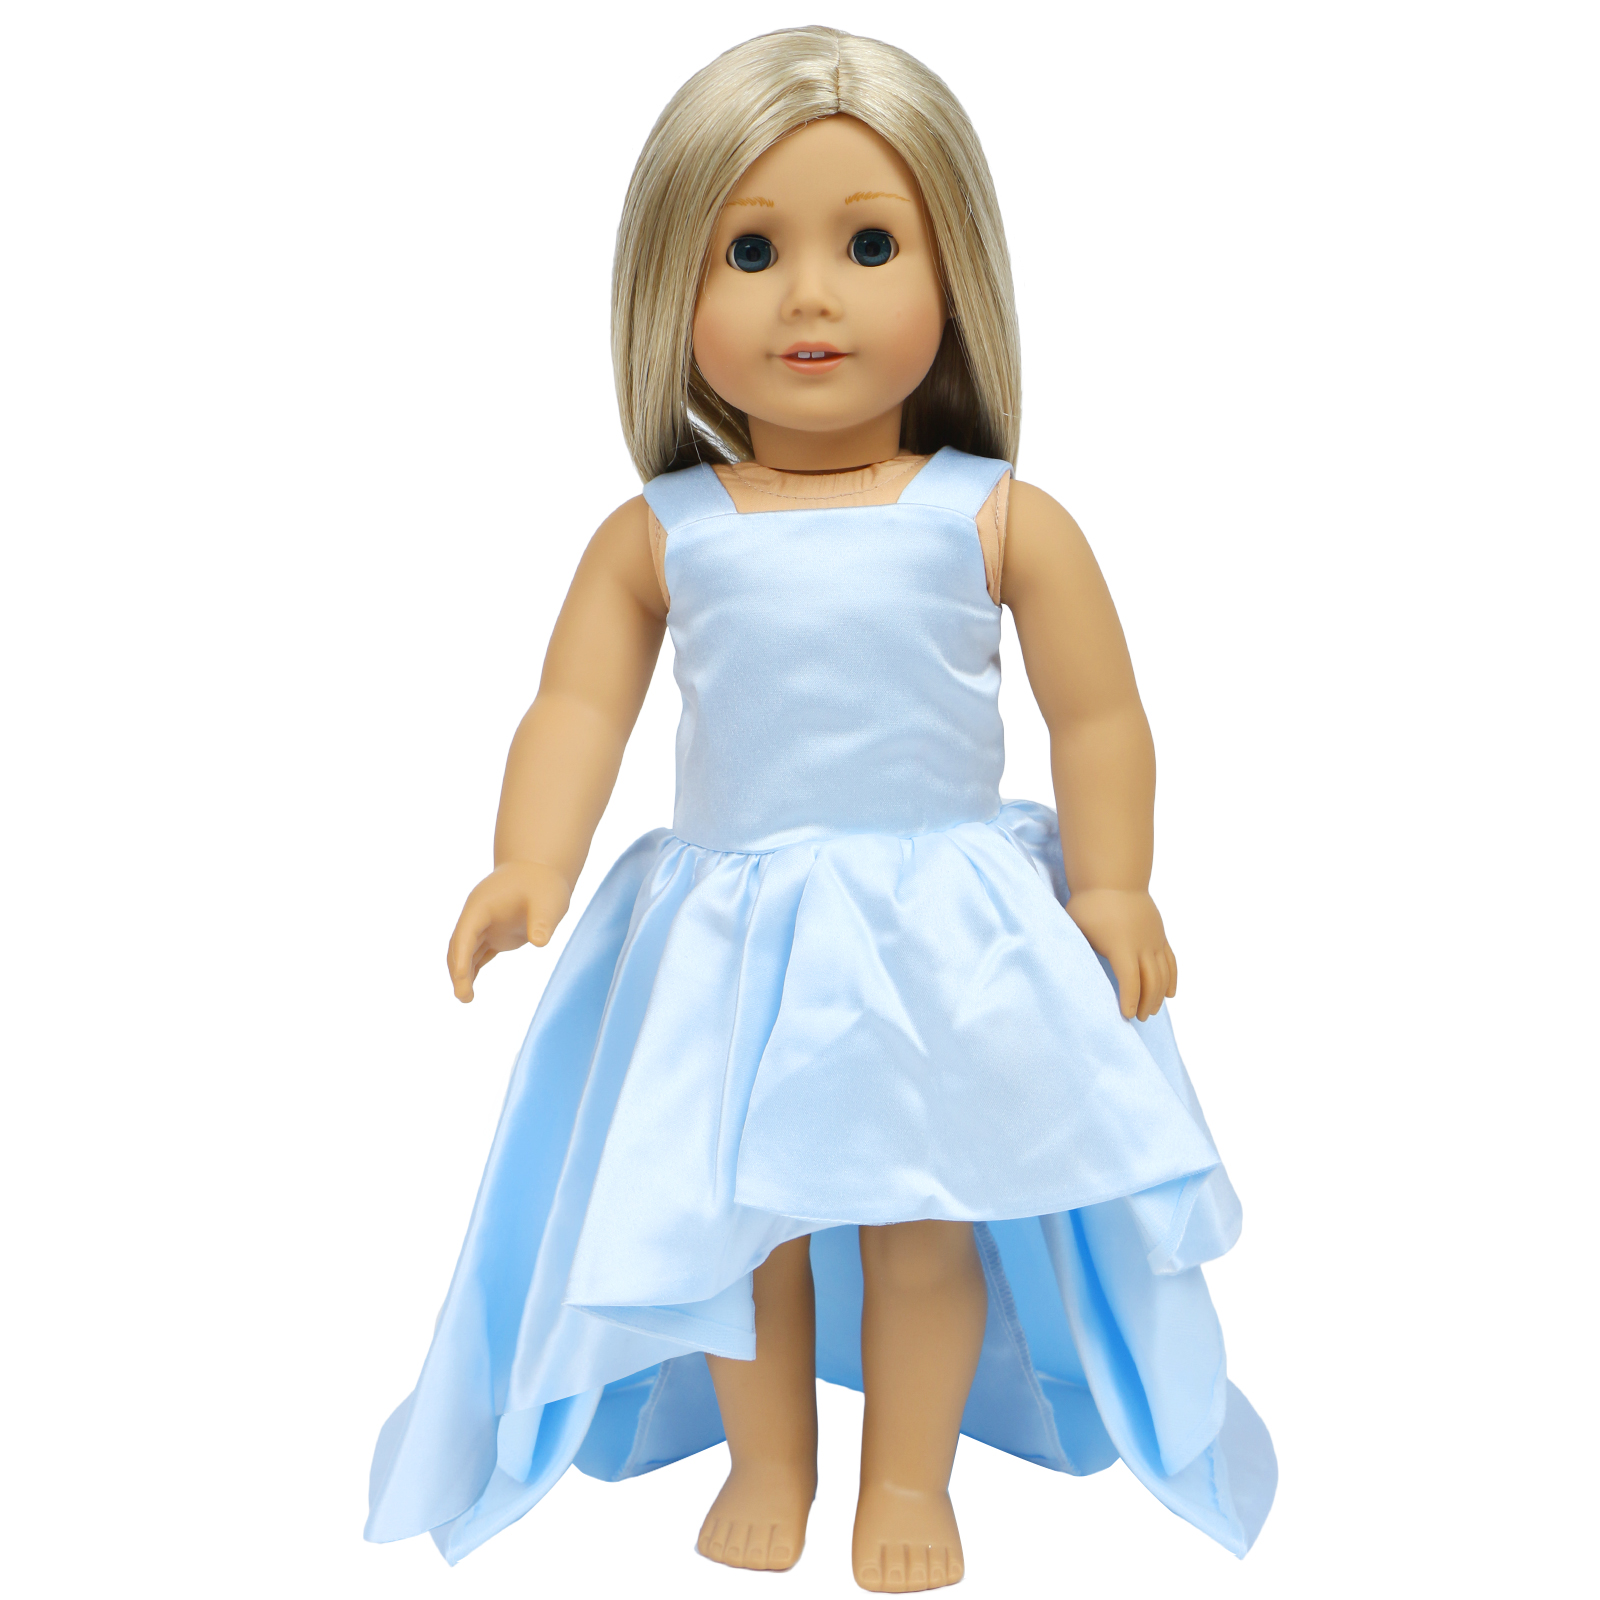 Dress Along Dolly Pink Dress 4 Pieces Fits American Girl Dolls and Other 18 Dolls